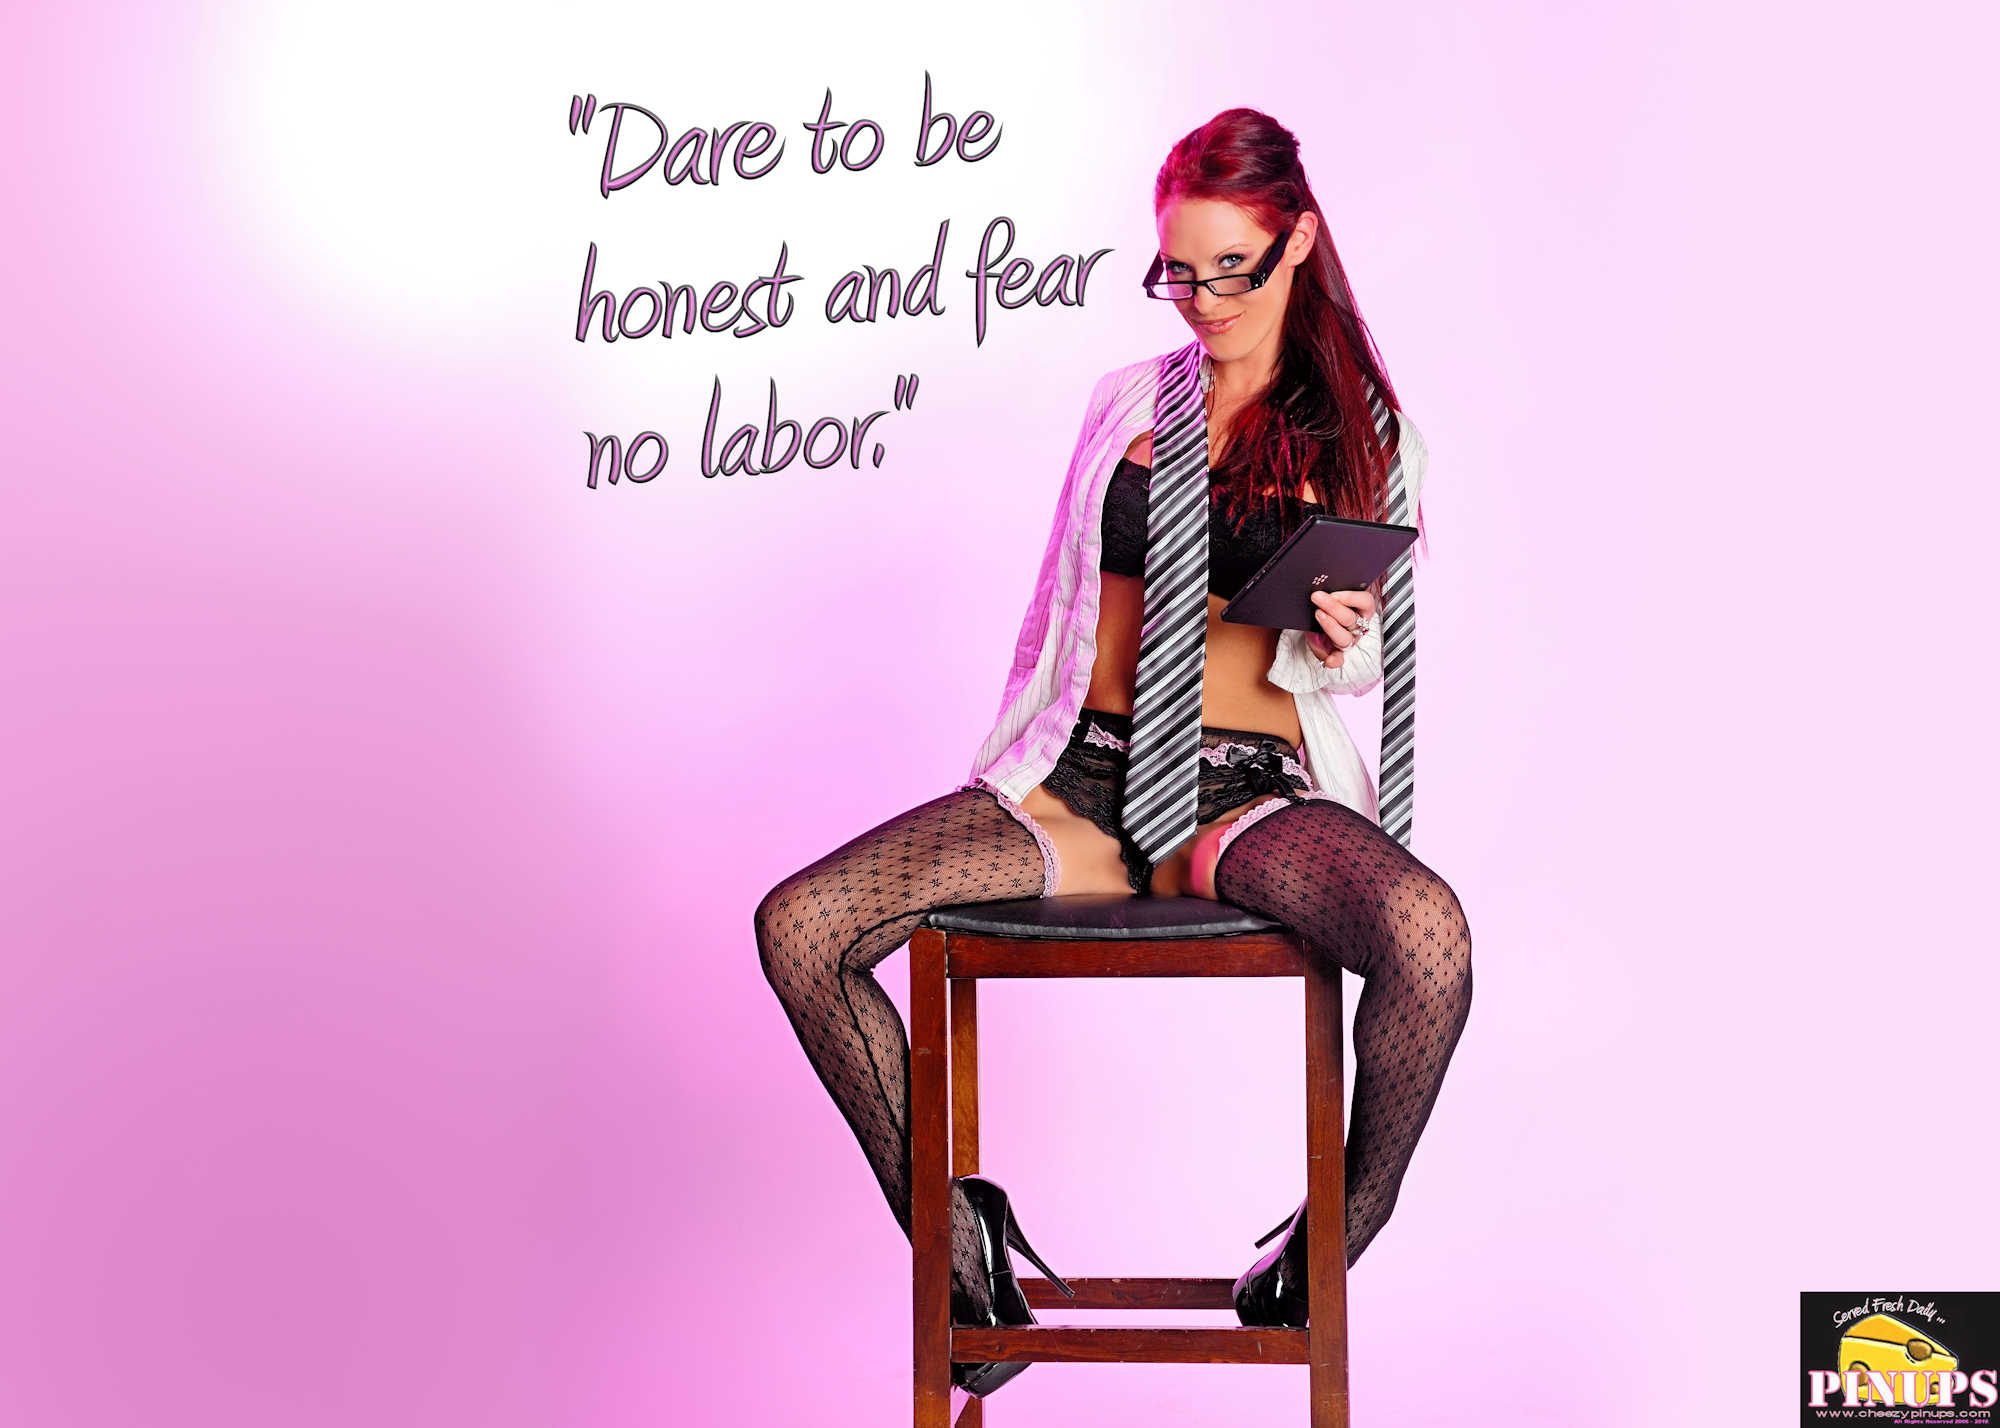 "Cheezy Pinup - January 25, 2018 ""Dare to be honest and fear no labor."" - Robert Burns Model: Brandy"